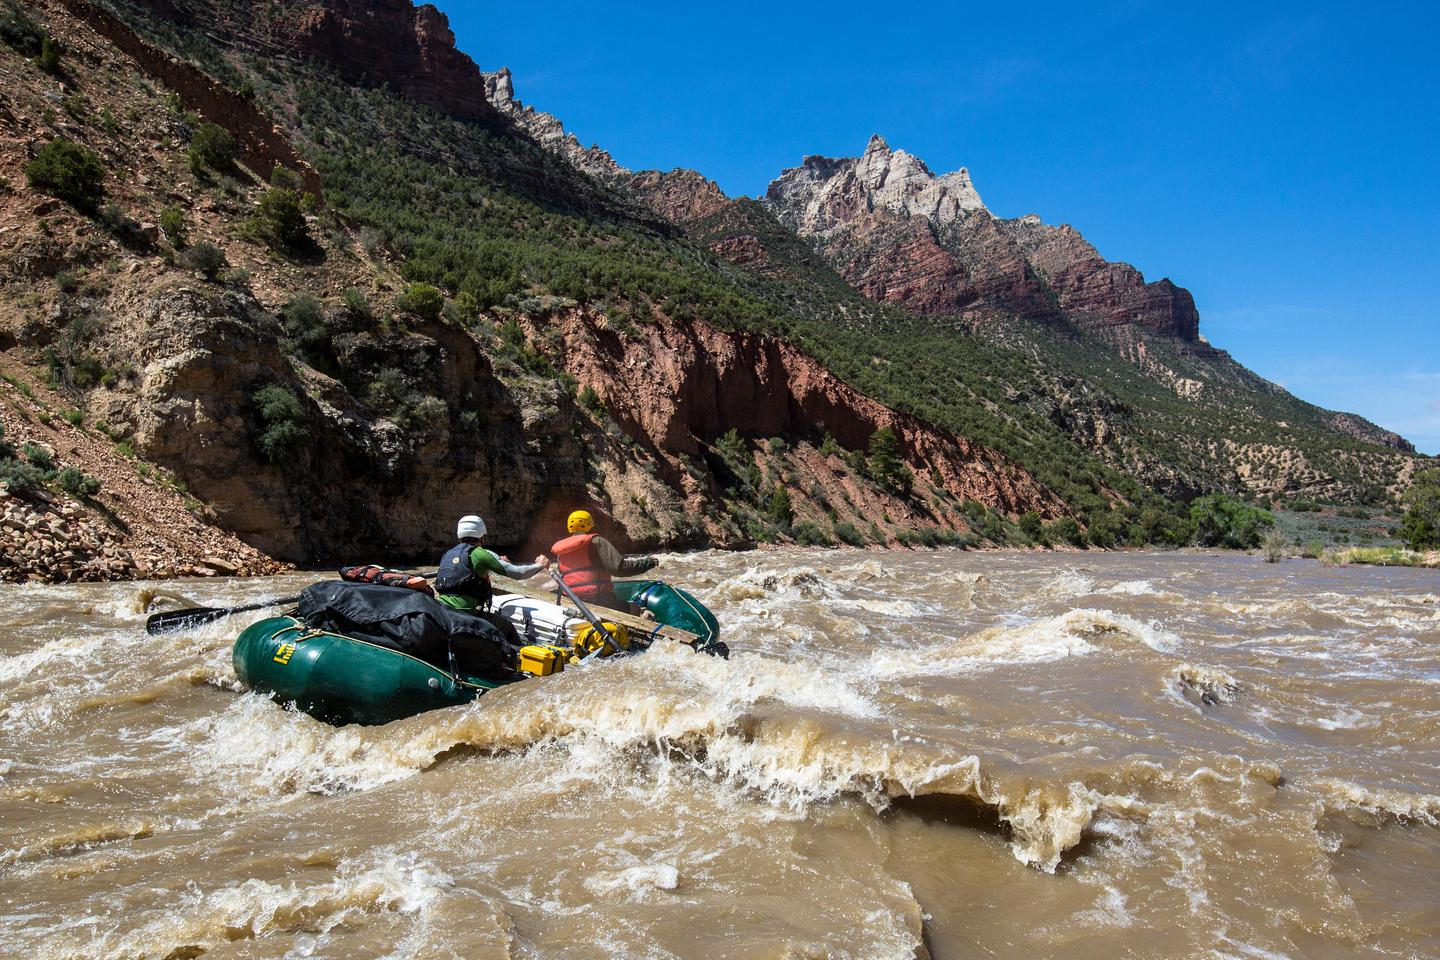 Floating RapidsRapids like those in Split Mountain Canyon challenge and thrill rafters on the Green River.